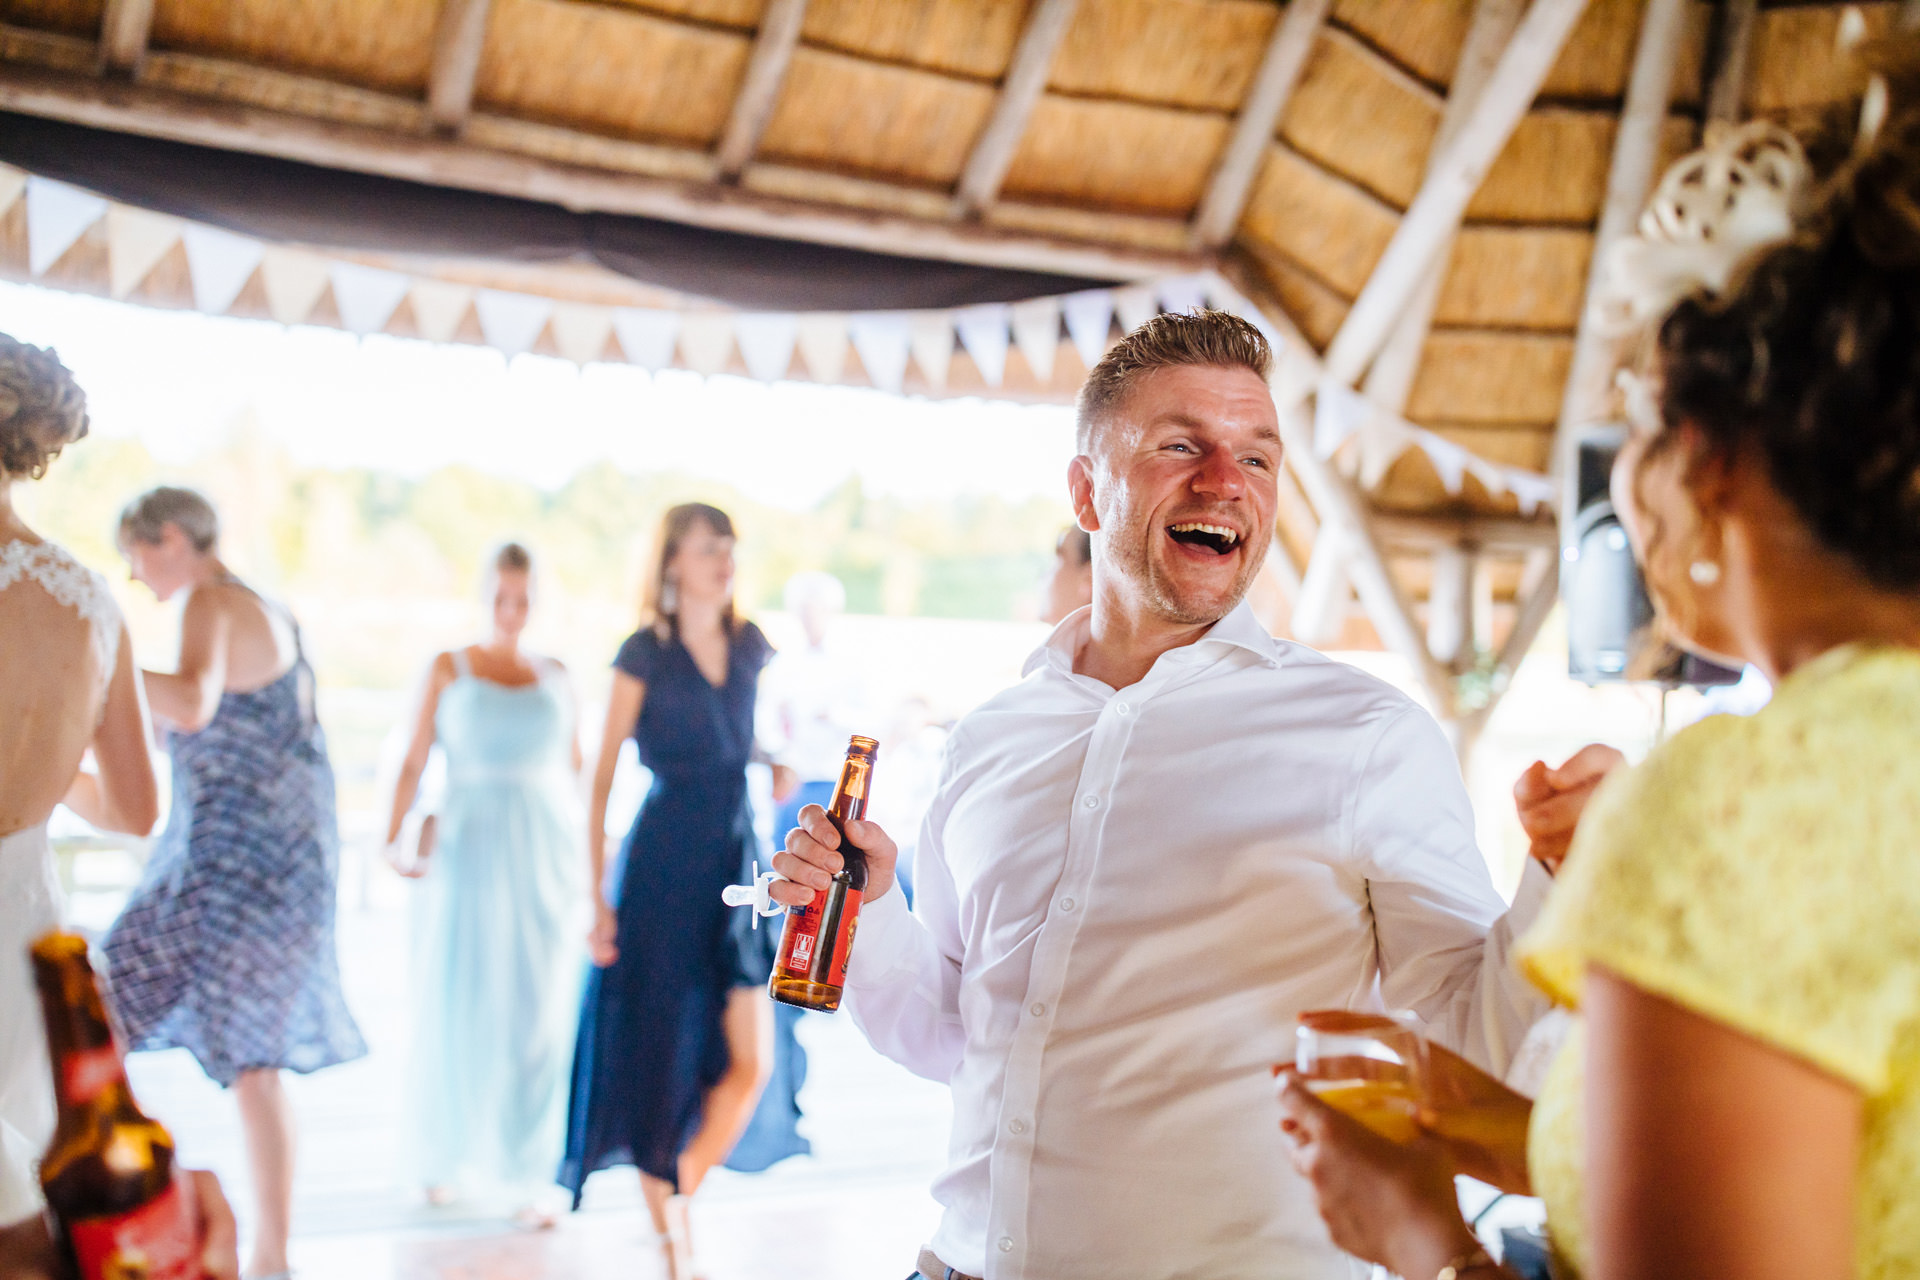 man in white shirt with Budweiser beer laughing and dancing